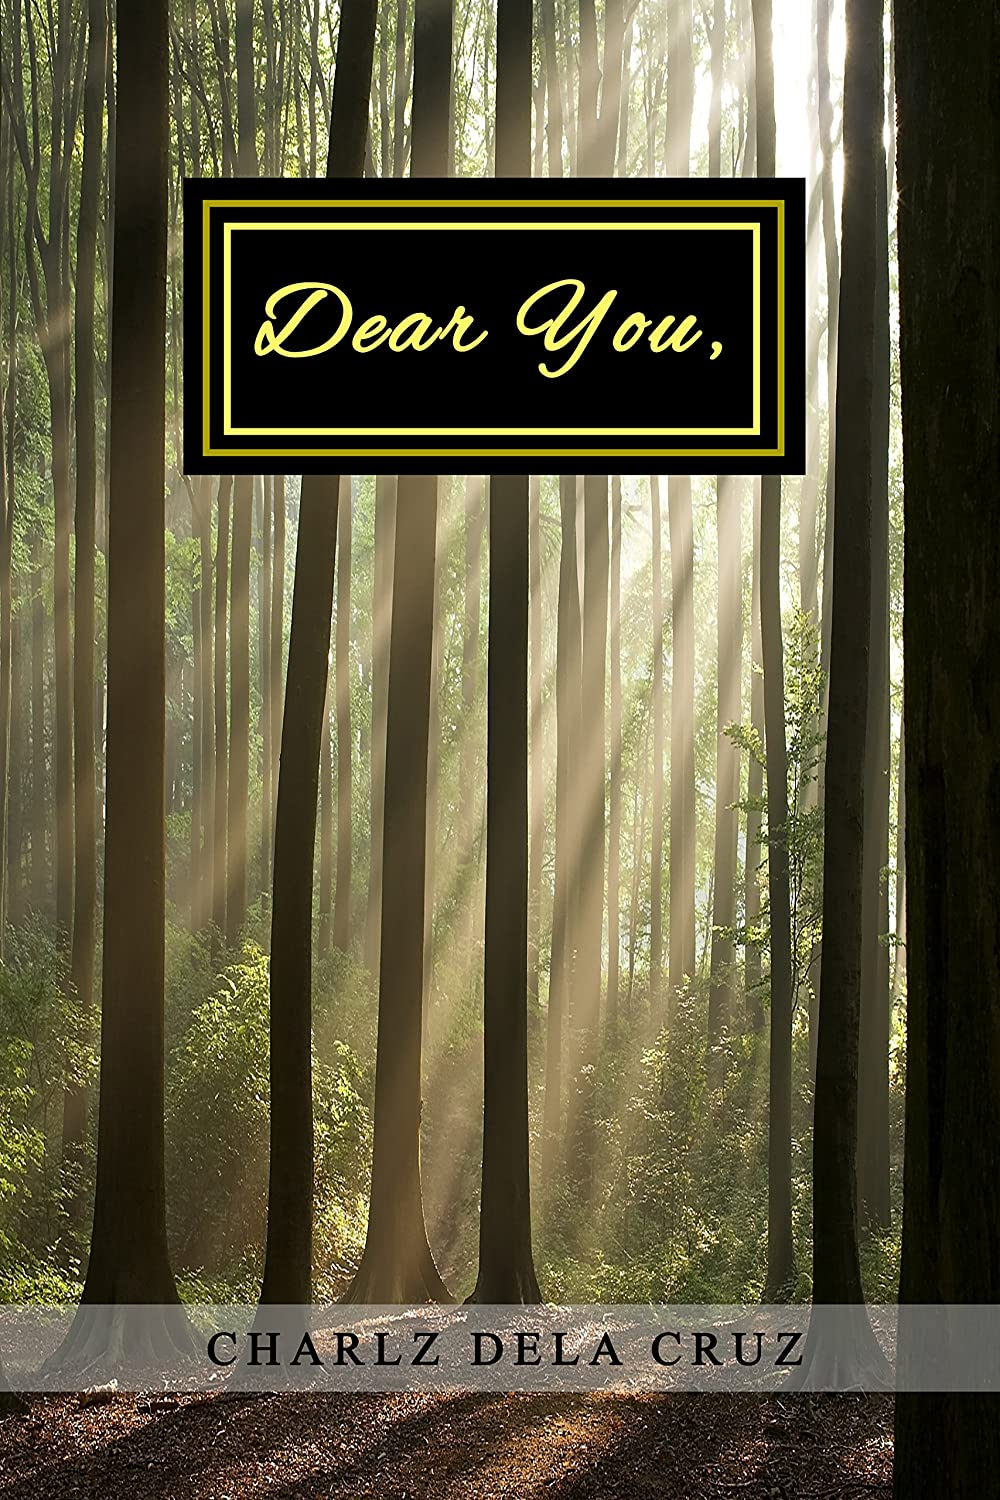 http://www.amazon.com/Dear-You-Charlz-dela-Cruz-ebook/dp/B00NUFA4DA/ref=cm_cr_pr_pb_t